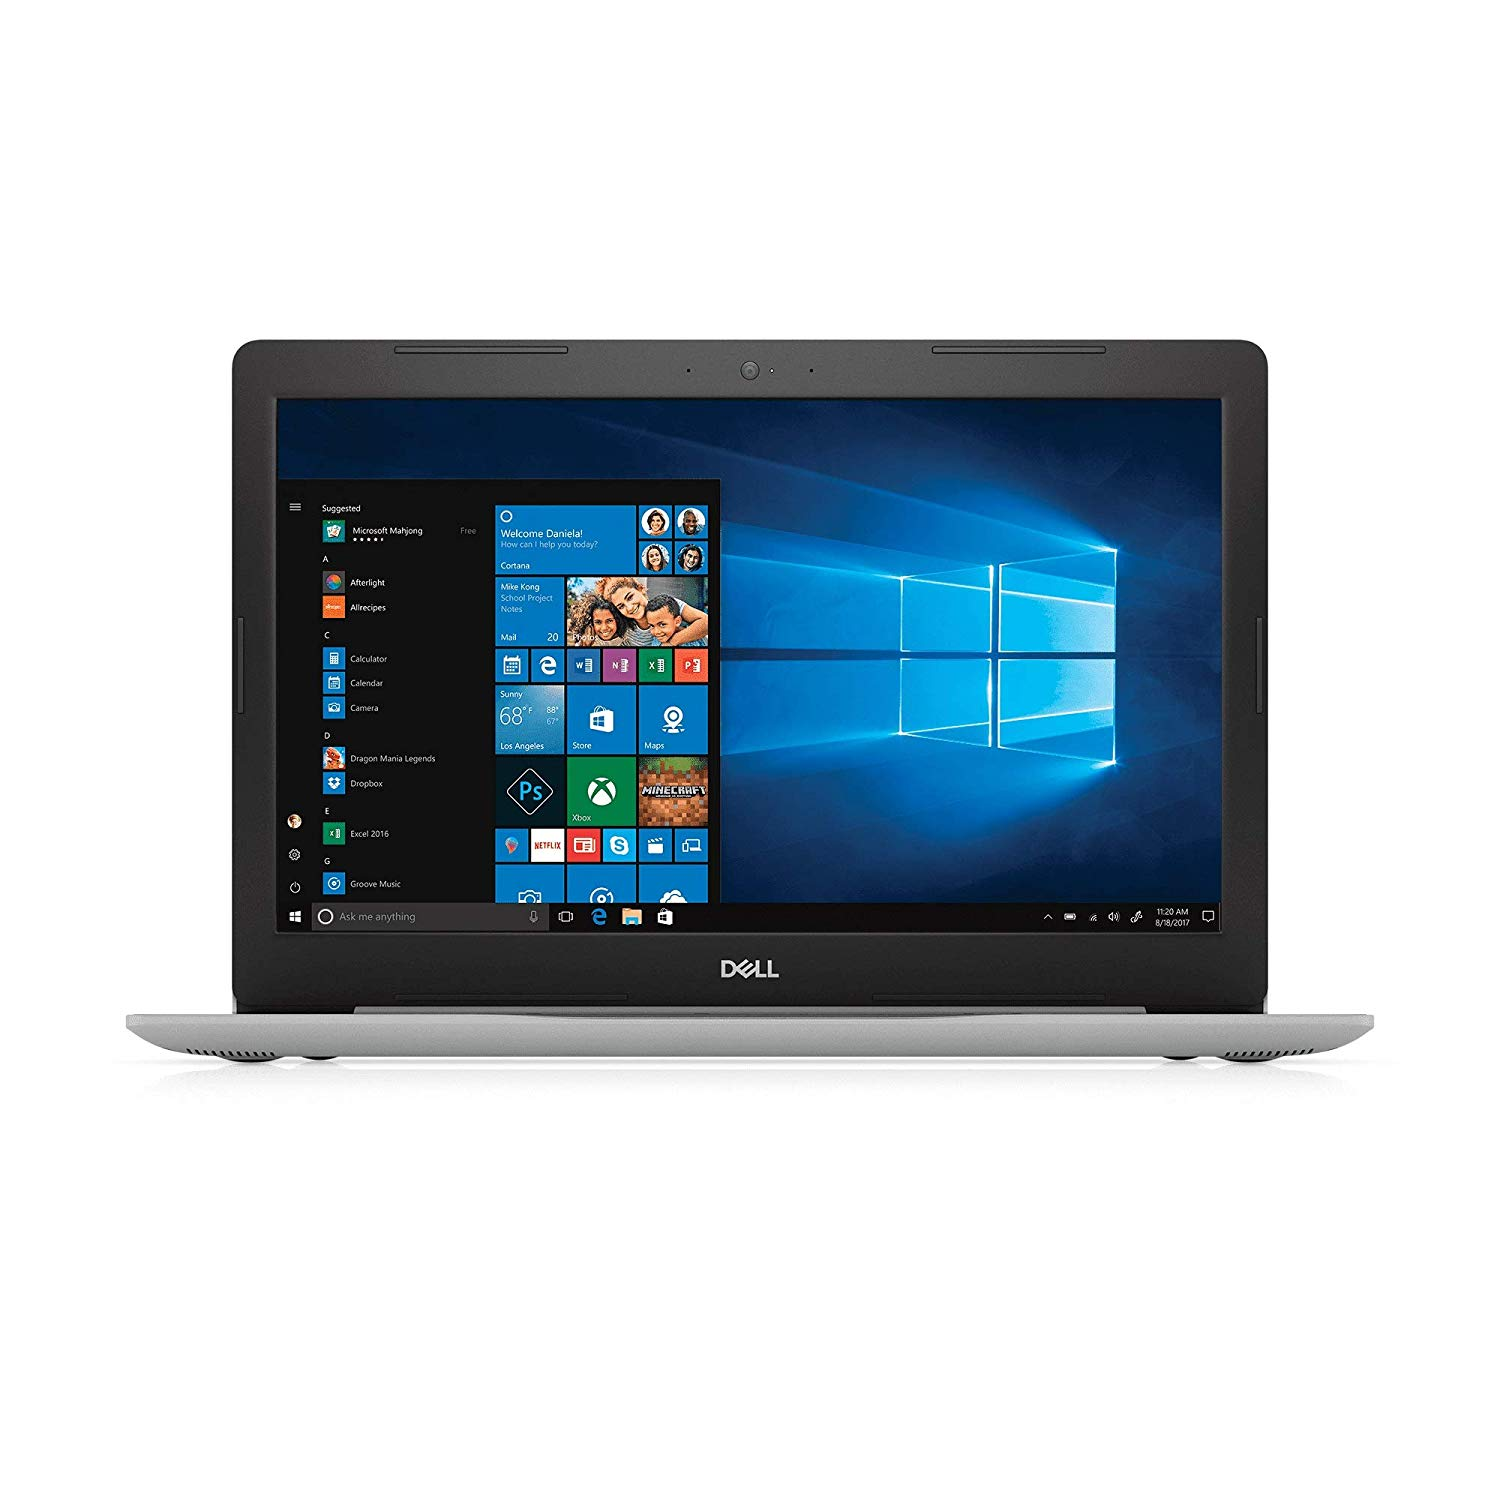 Dell-Inspiron 15 5570,15.6 inch HD (1366x768) Laptop